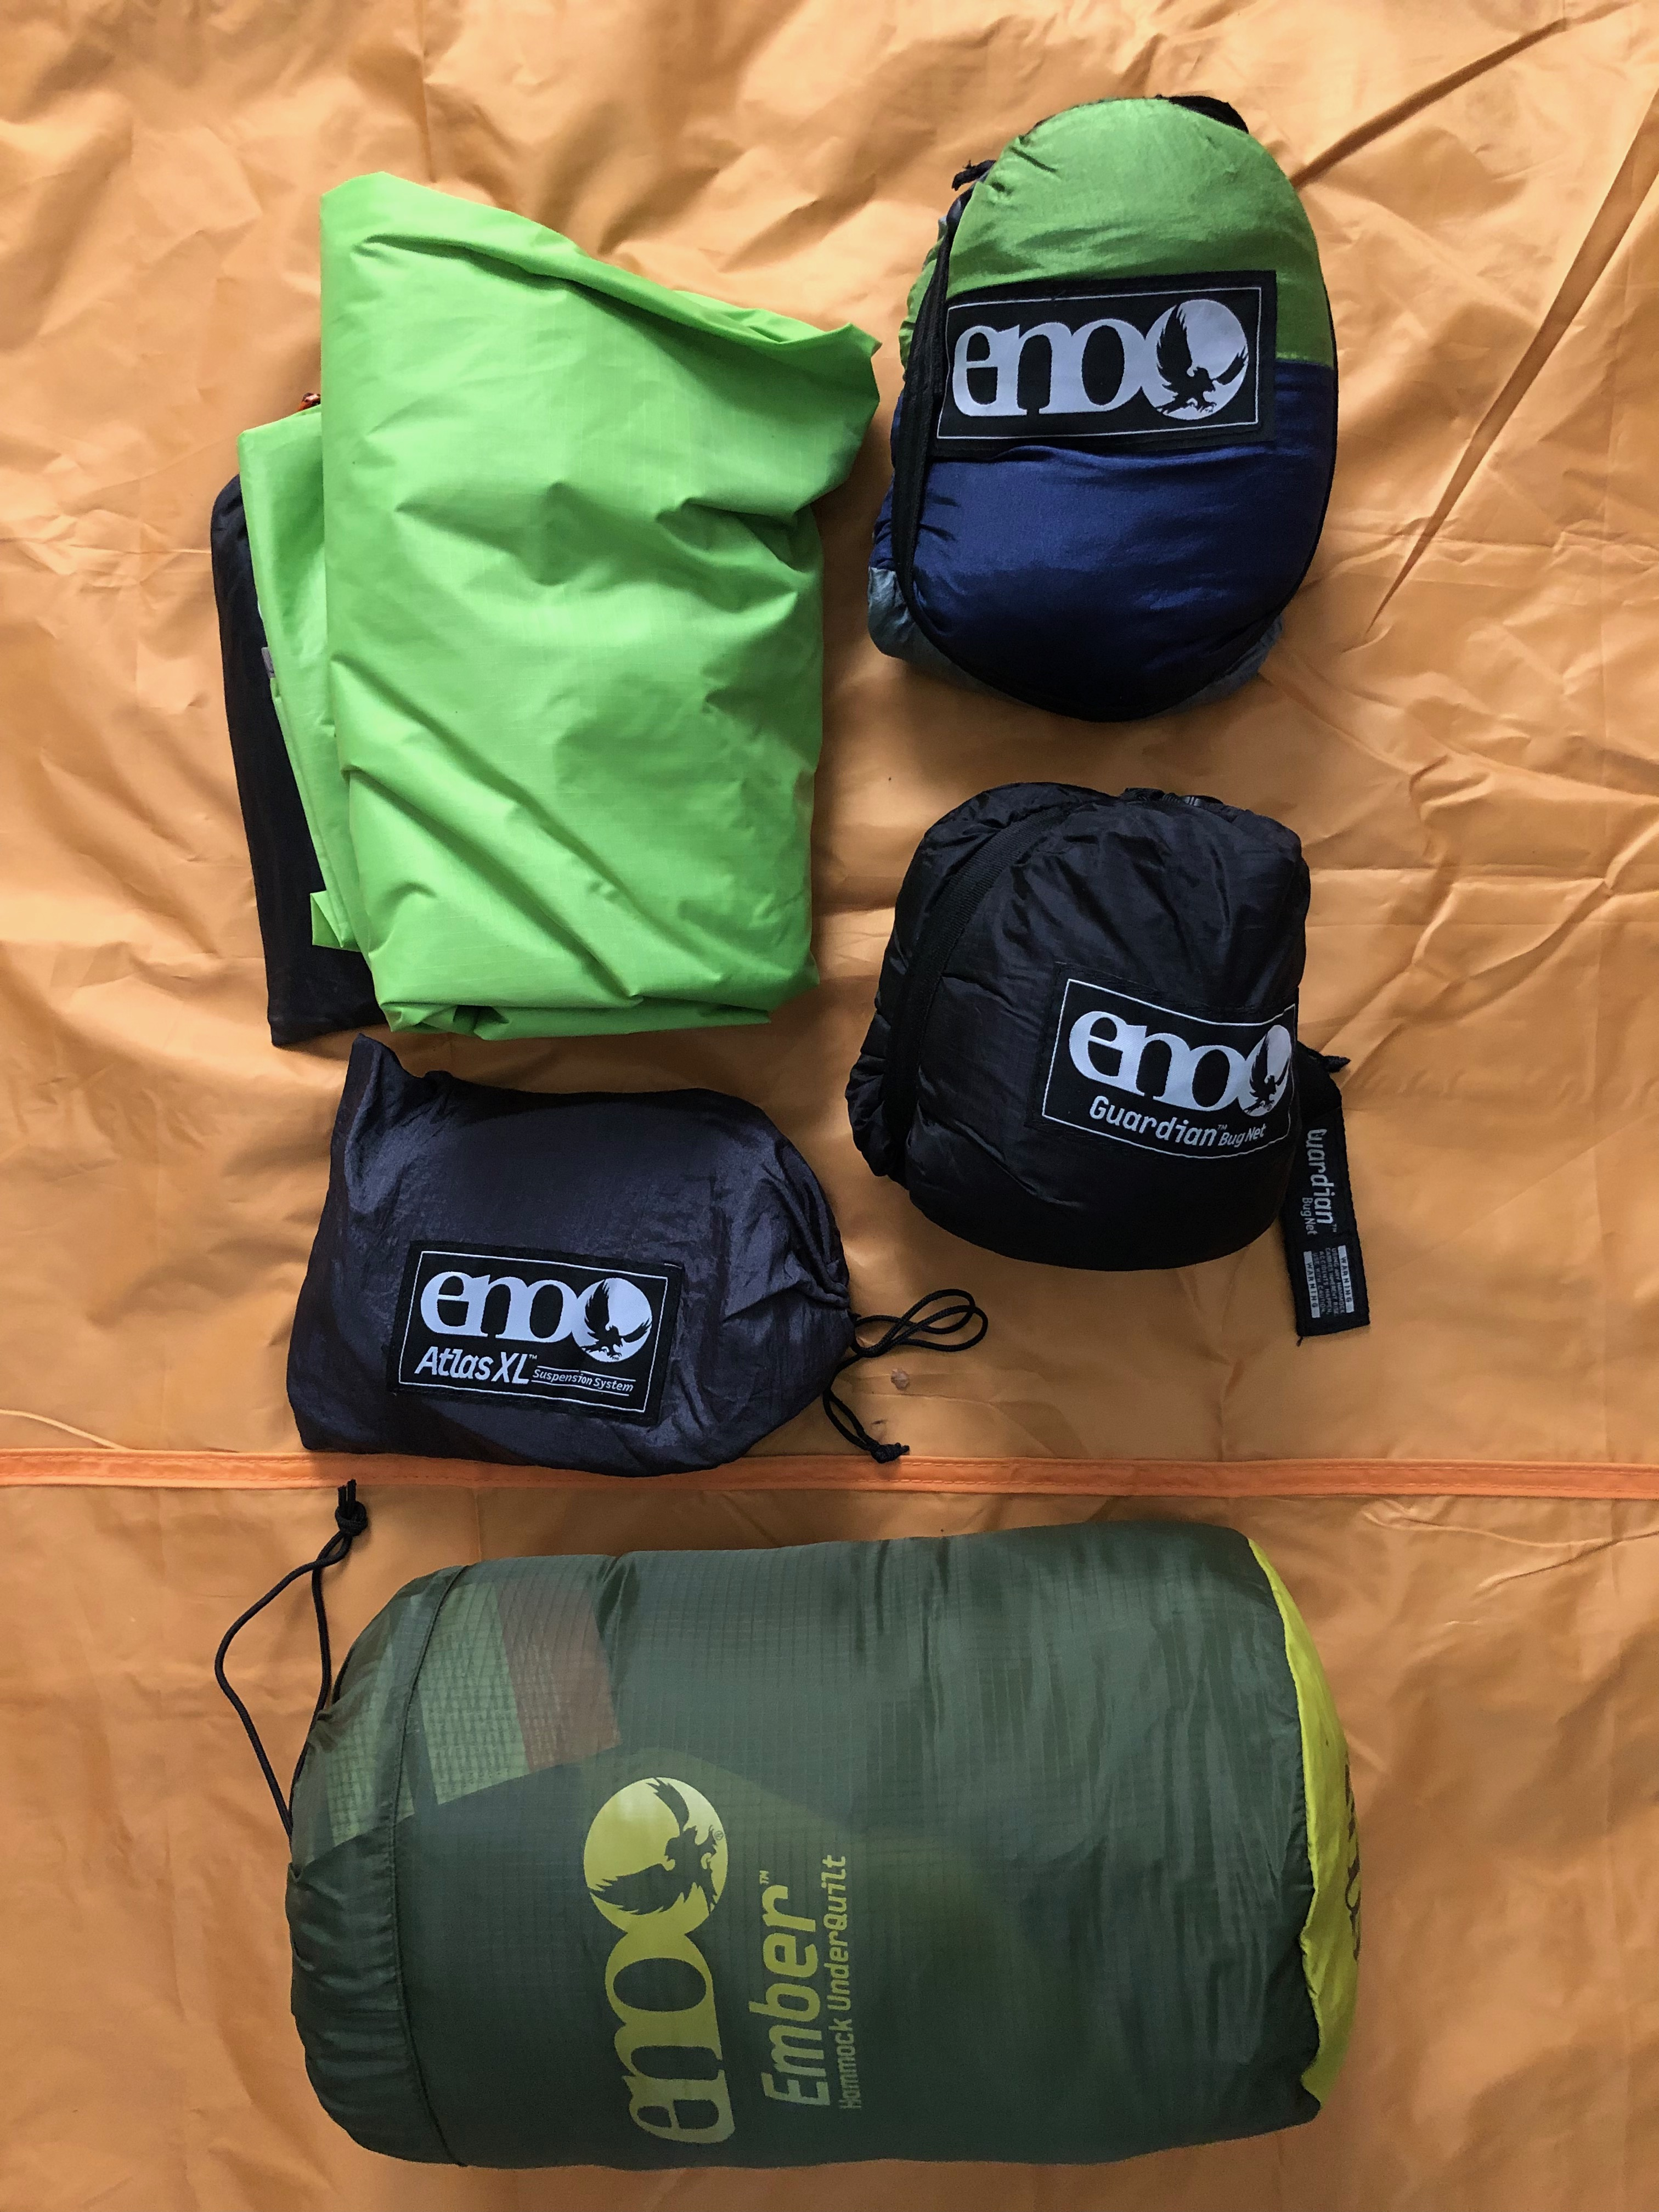 The picture shows the components of her ENO Hammock system, packed into their respective storage bags. from top left to right, top to bottom are pictured the Profly™ Rain Fly, DoubleNest® Hammock, Atlas™ XL Straps, Guardian™ Bug Net, and Ember™ Underquilt on an orange background.